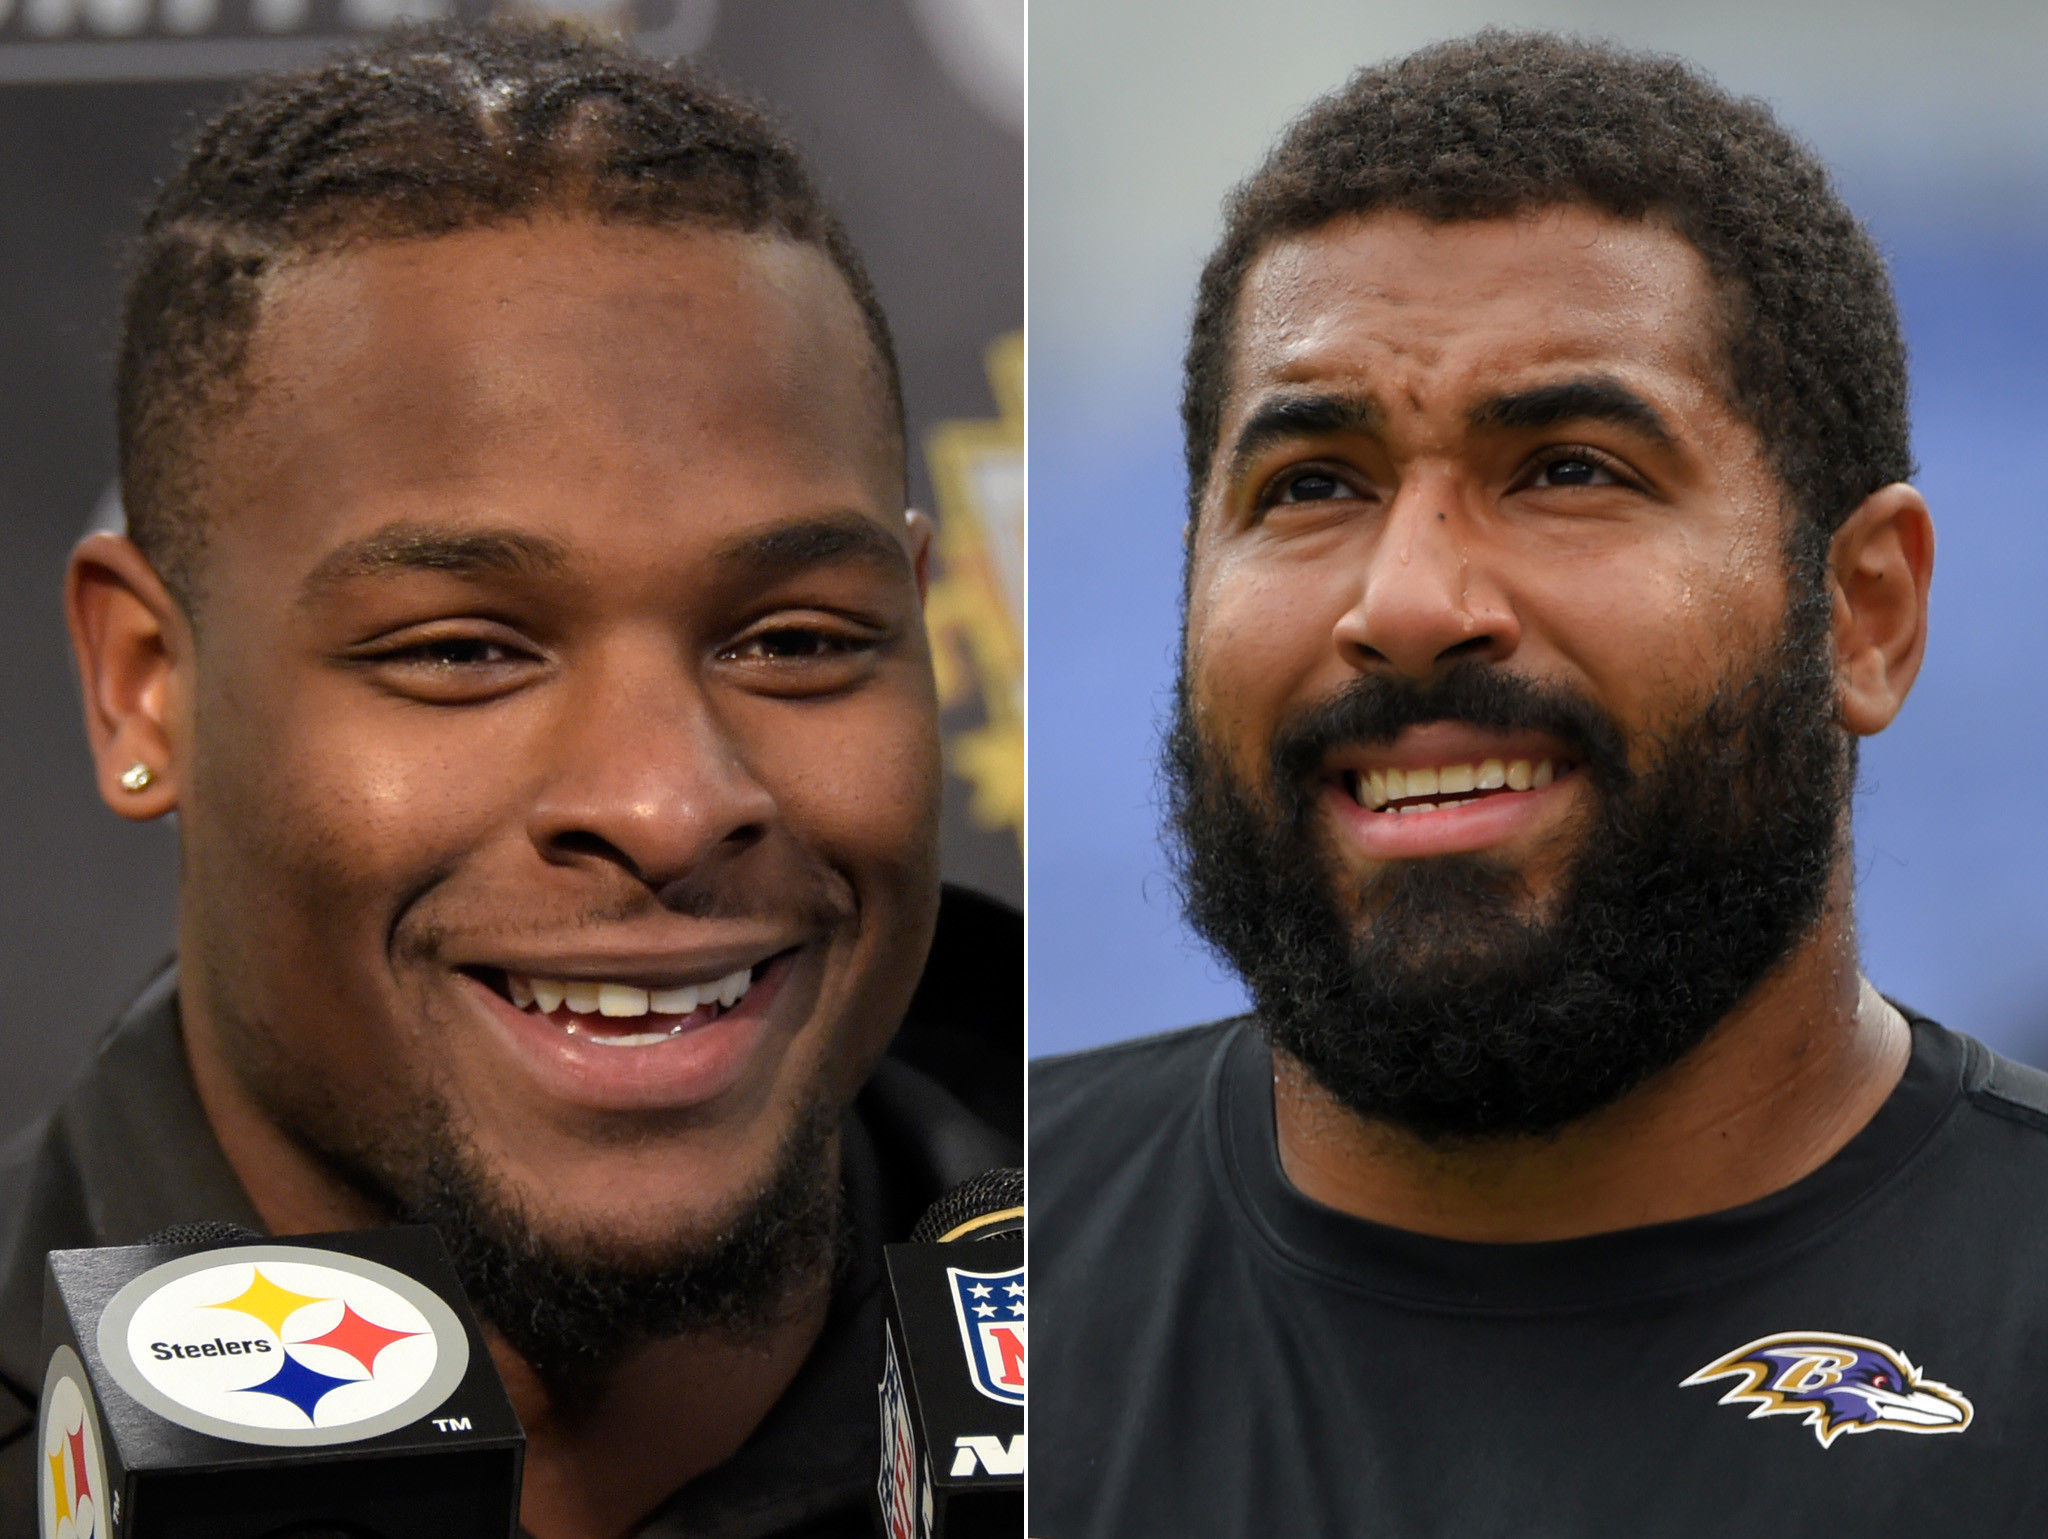 Bal-chess-please-john-urschel-vs-le-veon-bell-is-the-matchup-the-nfl-needs-20170113